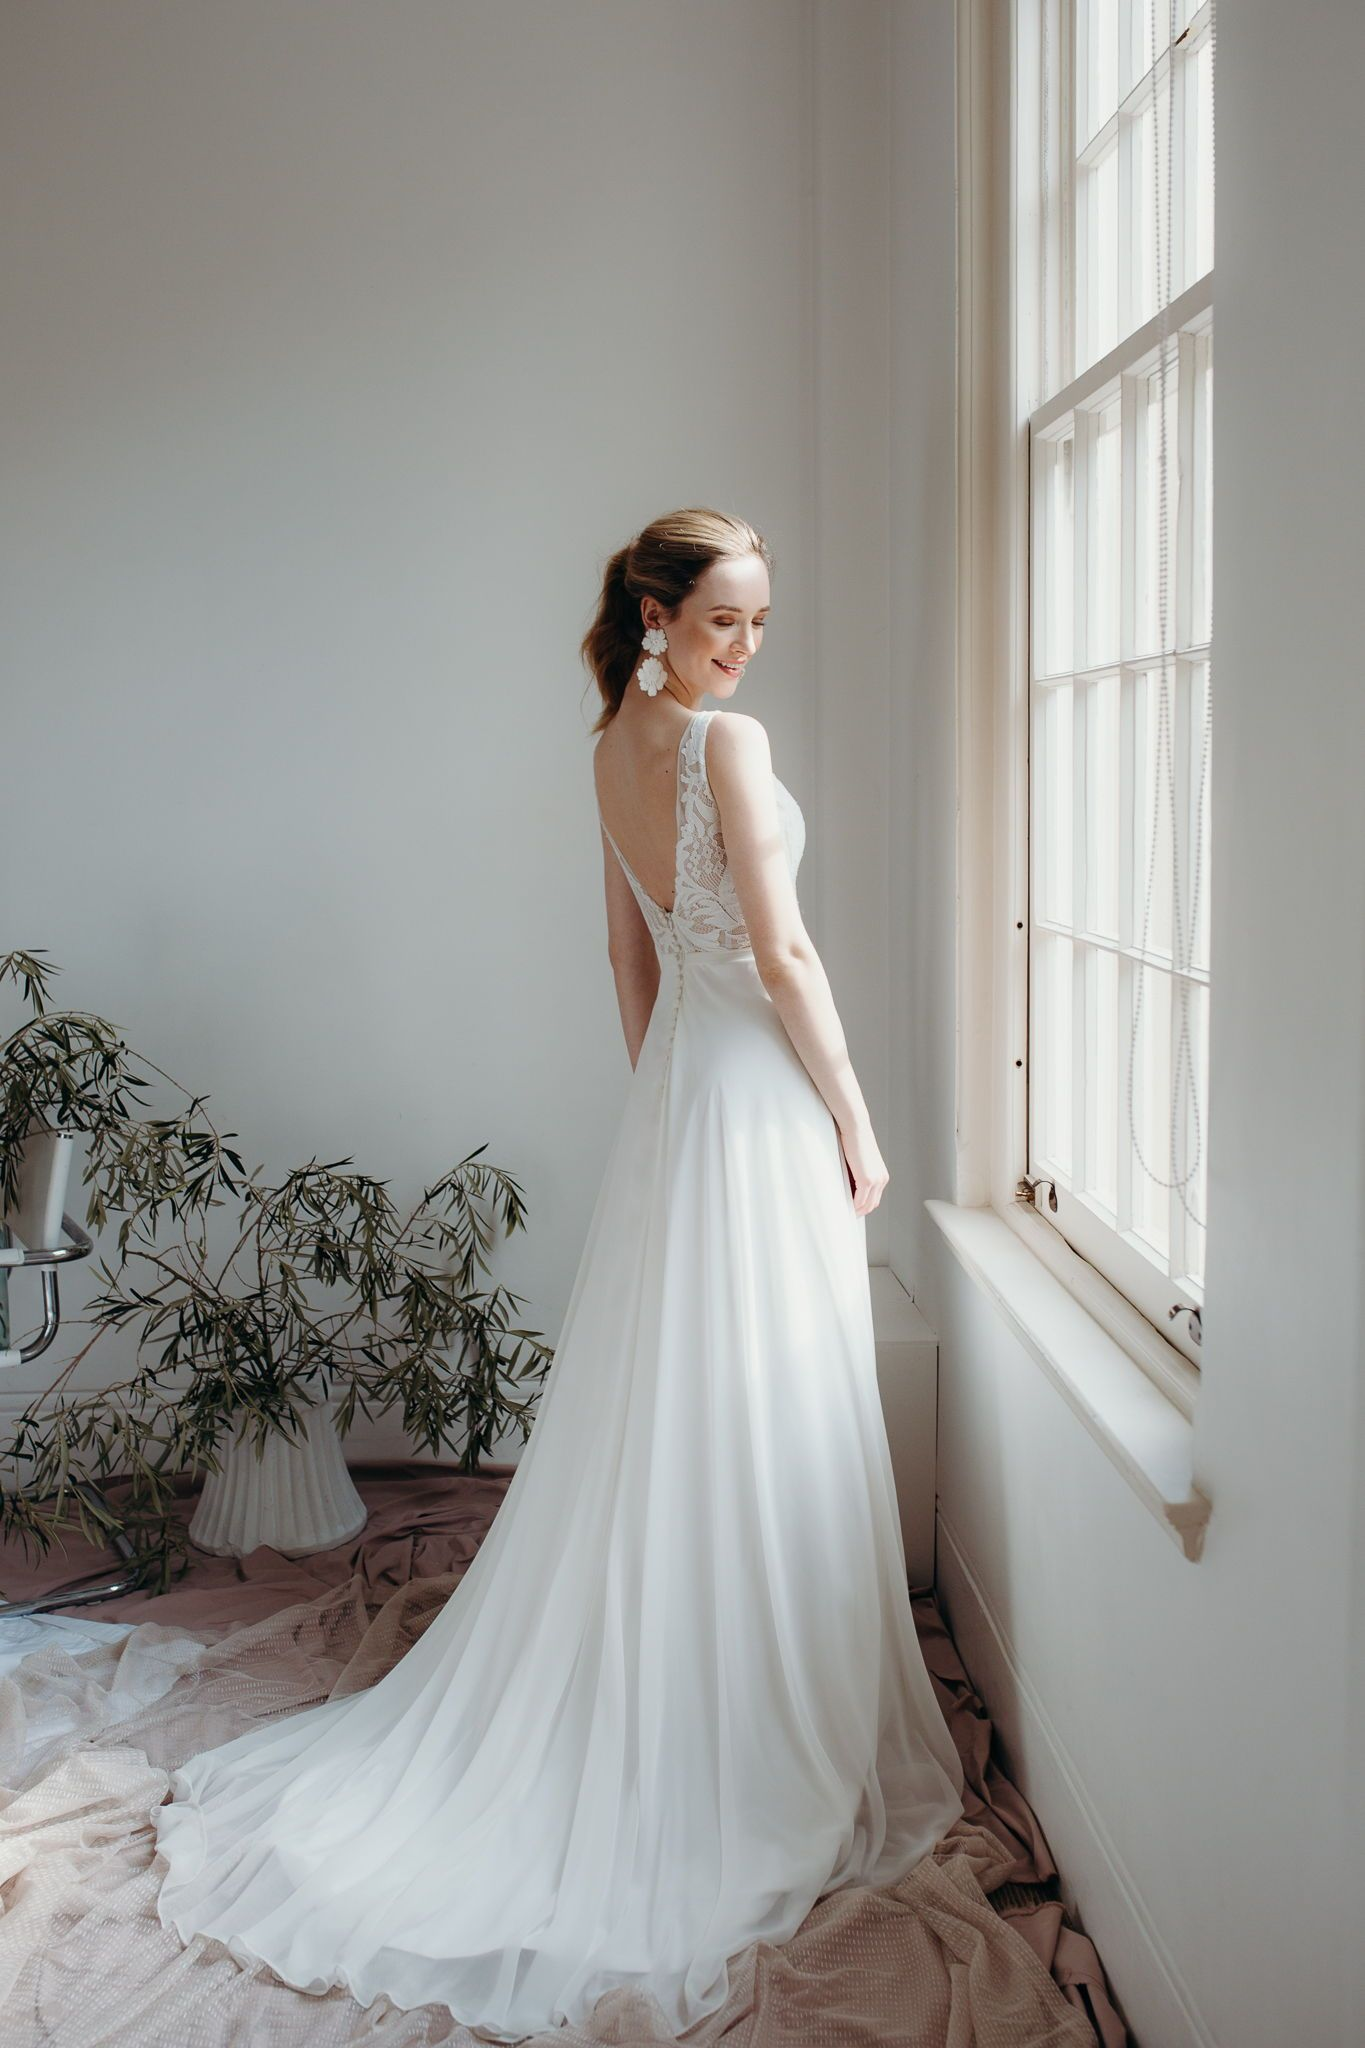 Daisy Brides By Katie Yeung Pixie Wedding Dress Represented By Lms Creative Group Wedding Dresses Nz Dresses Nz Wedding Dresses